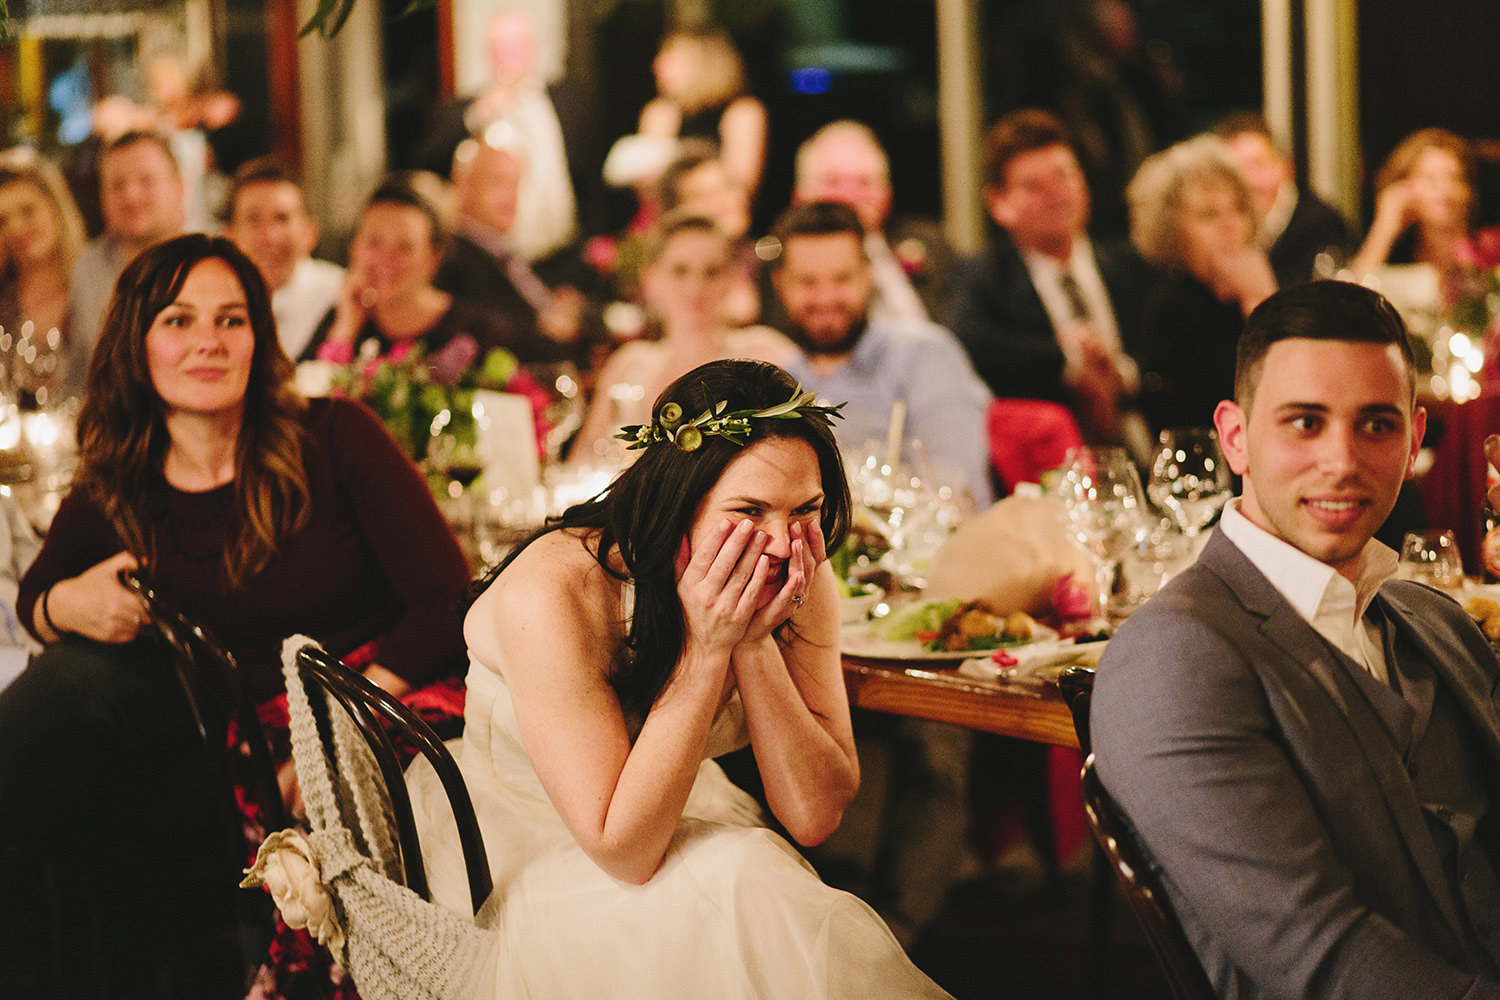 Melbourne_Winery_Wedding_Chris_Merrily170.JPG